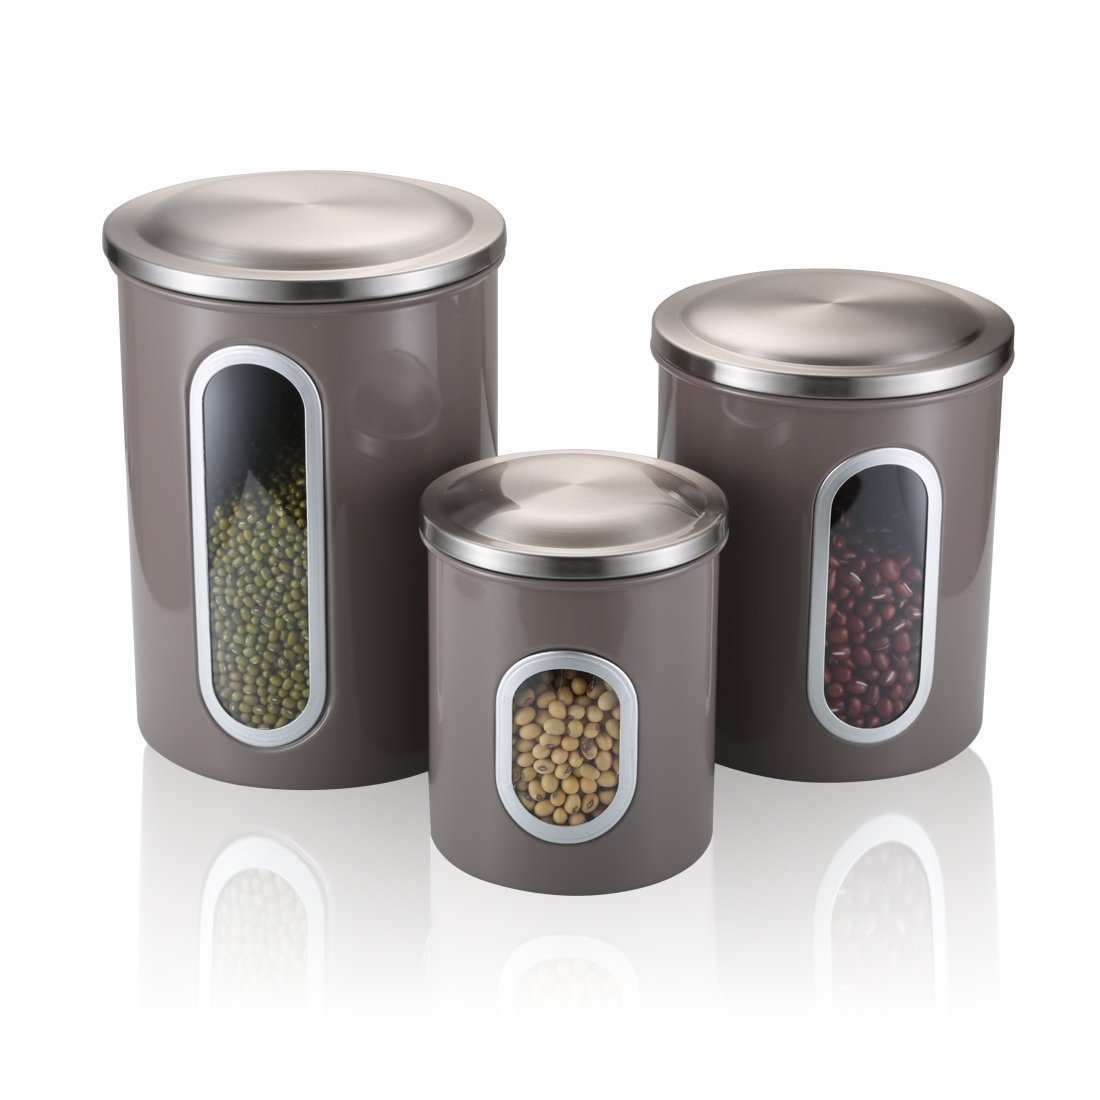 cheap kitchen canister sets cheap kitchen canister sets black find kitchen canister sets black deals on line at alibaba com 4353